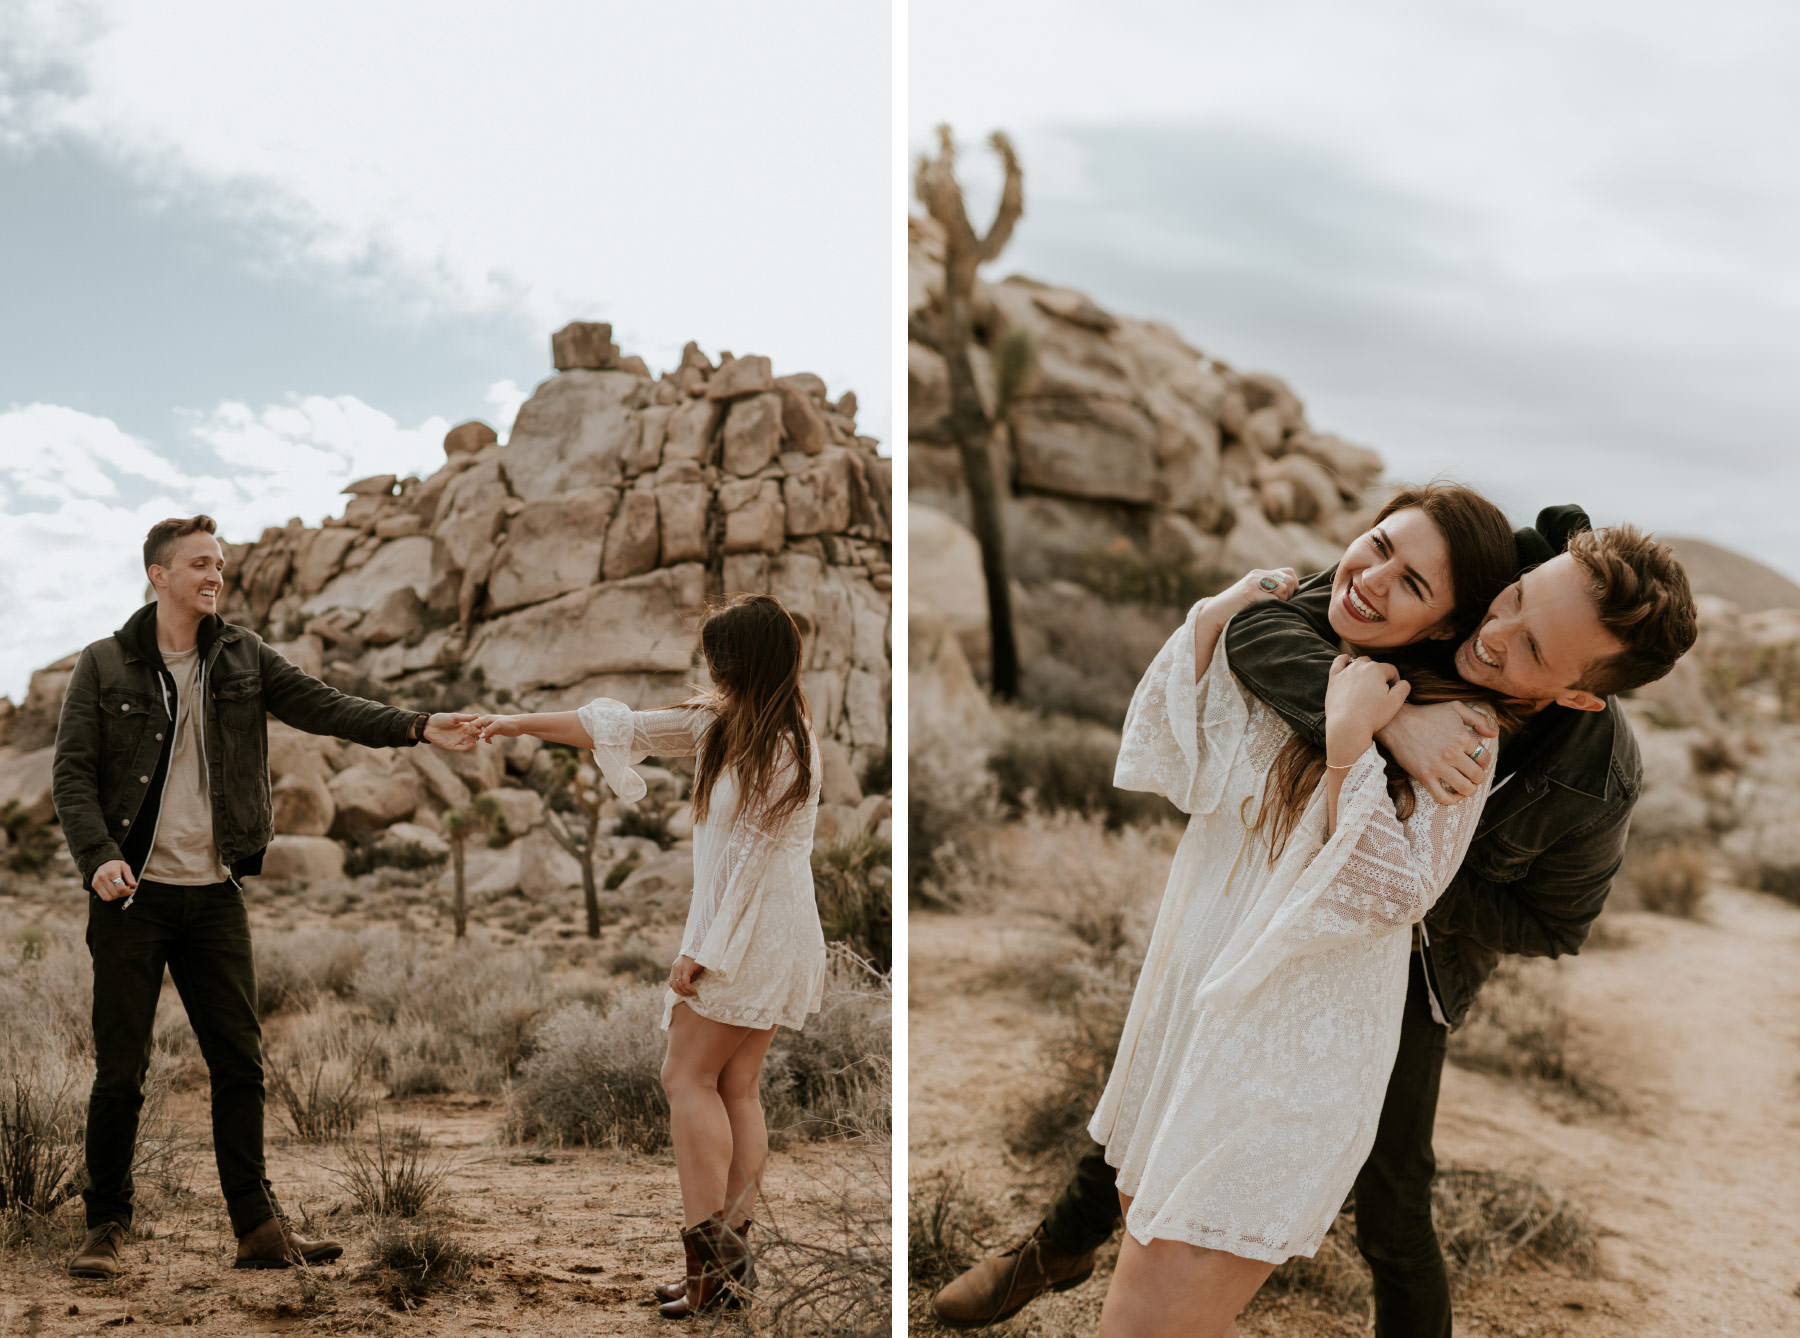 Couple playfully hug and dance at Joshua Tree